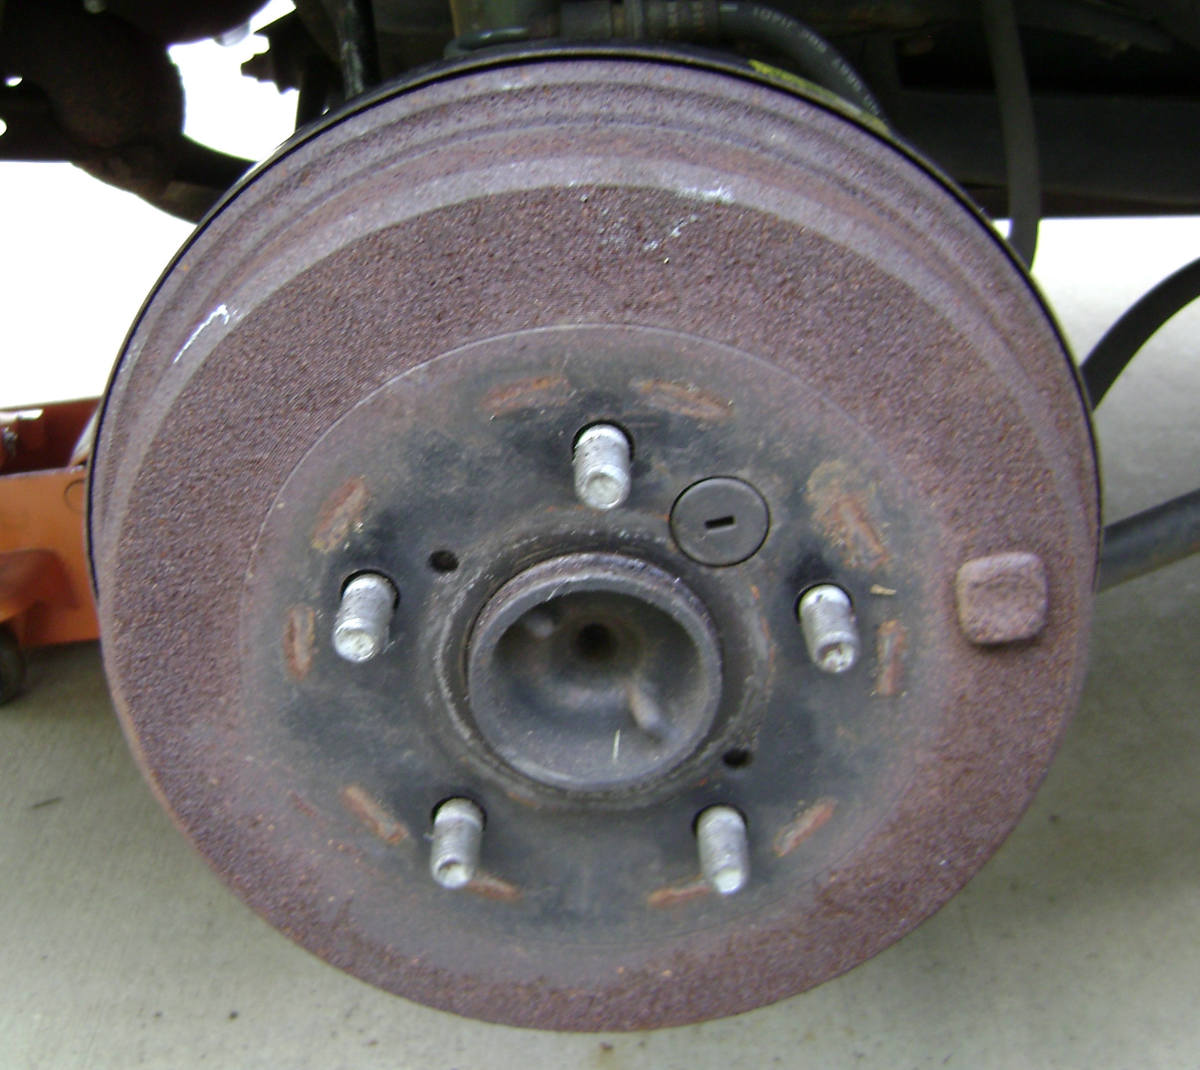 The Rear Brakes Require Adjustment If Parking Emergency Brake Handle Can Be Pulled Beyond 7 Clicks Many Have Failed Dmv Inspections Unaware Of Or